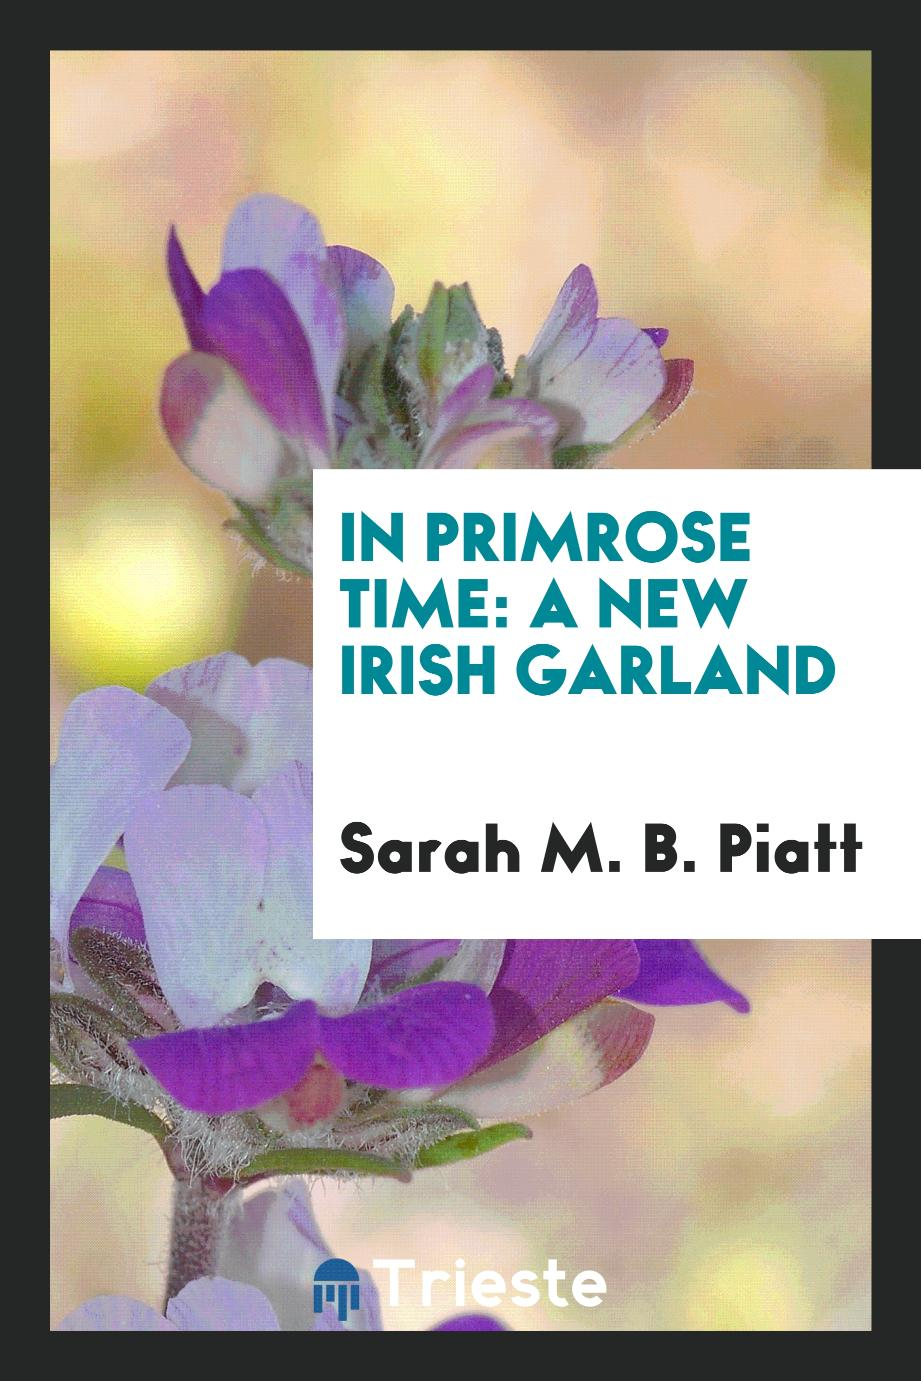 In Primrose Time: A New Irish Garland